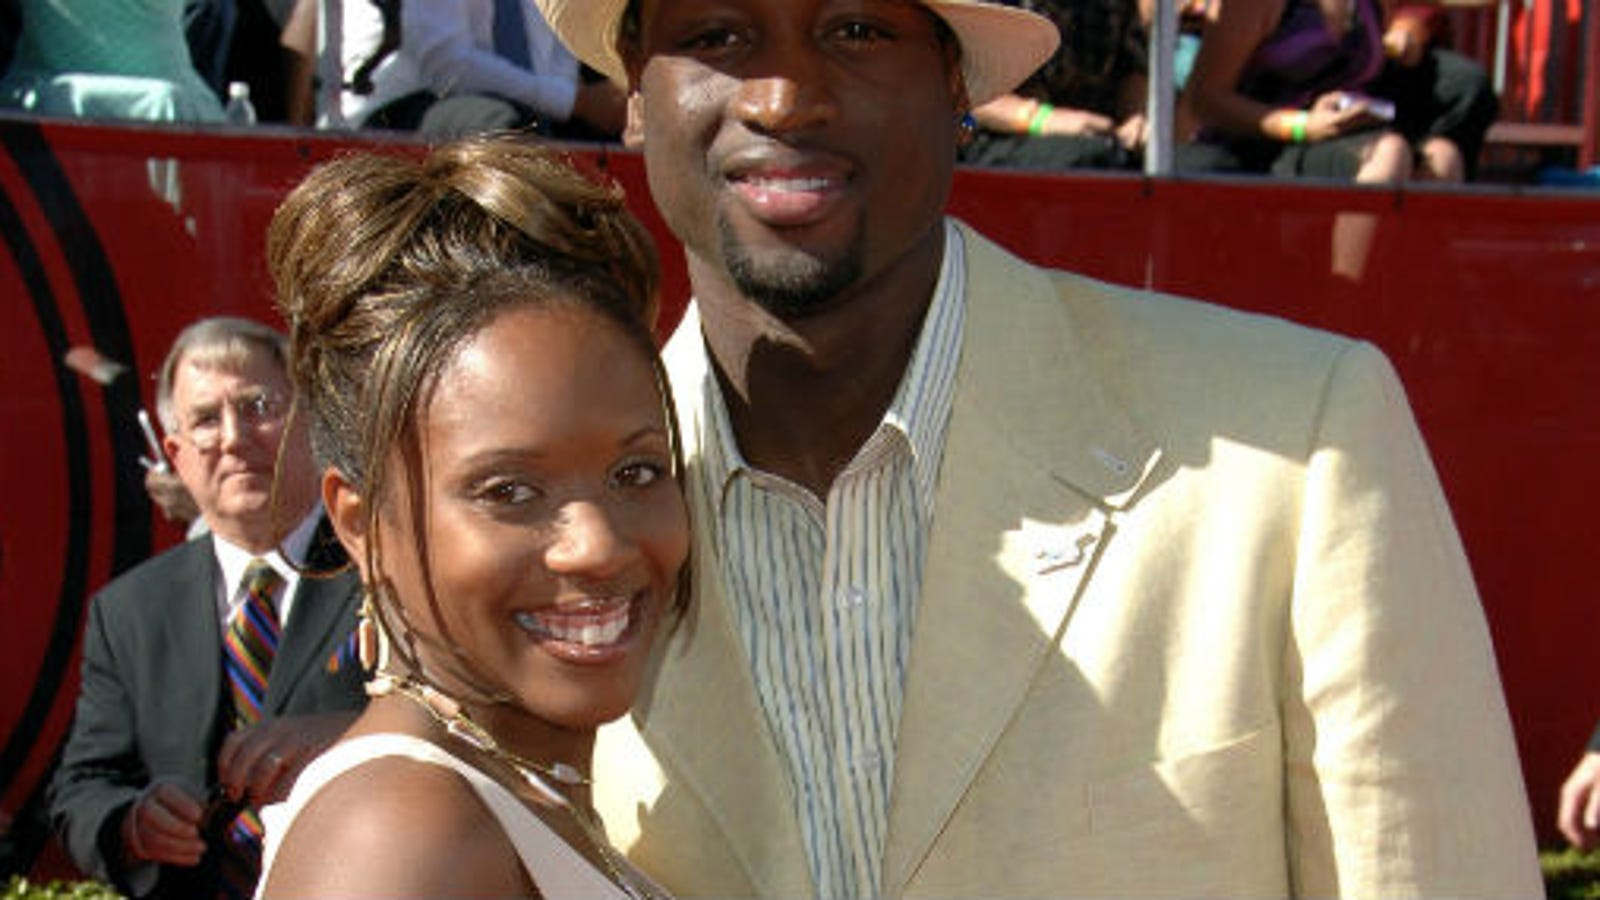 Dwyane Wade's Ex Needs to Let Go